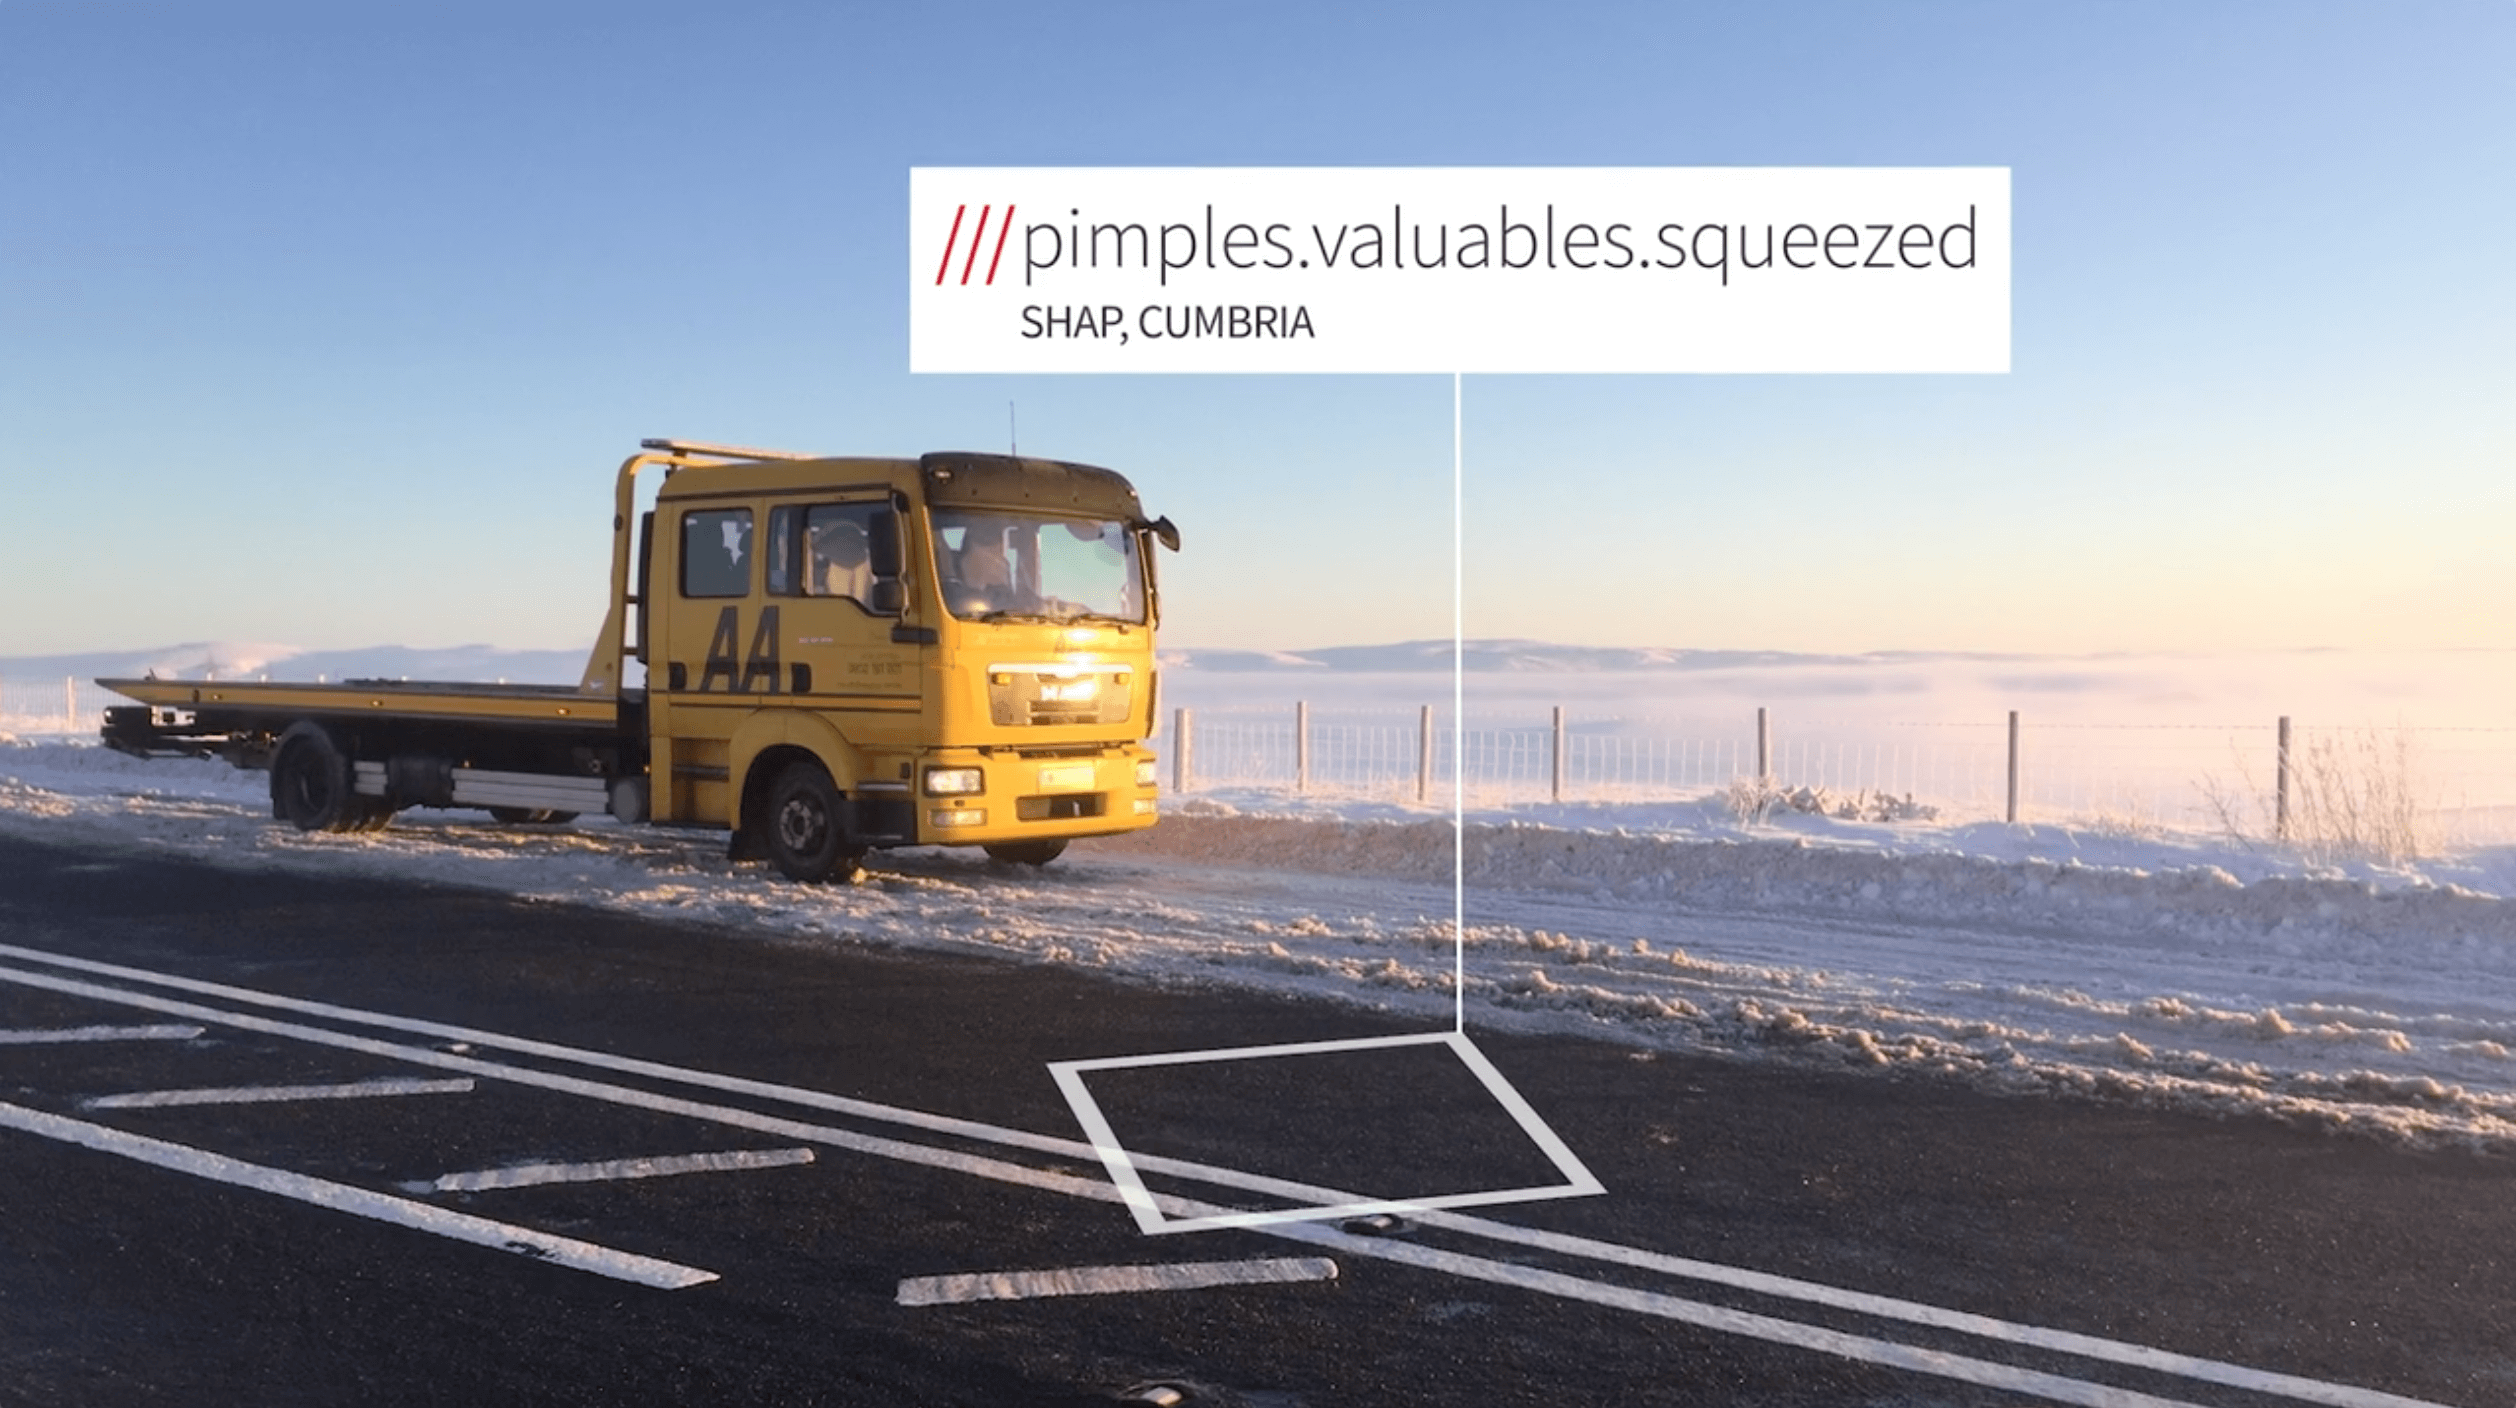 AA pickup truck in snowy weather conditions at 3 words address Pimples.Valuables.Squeezed